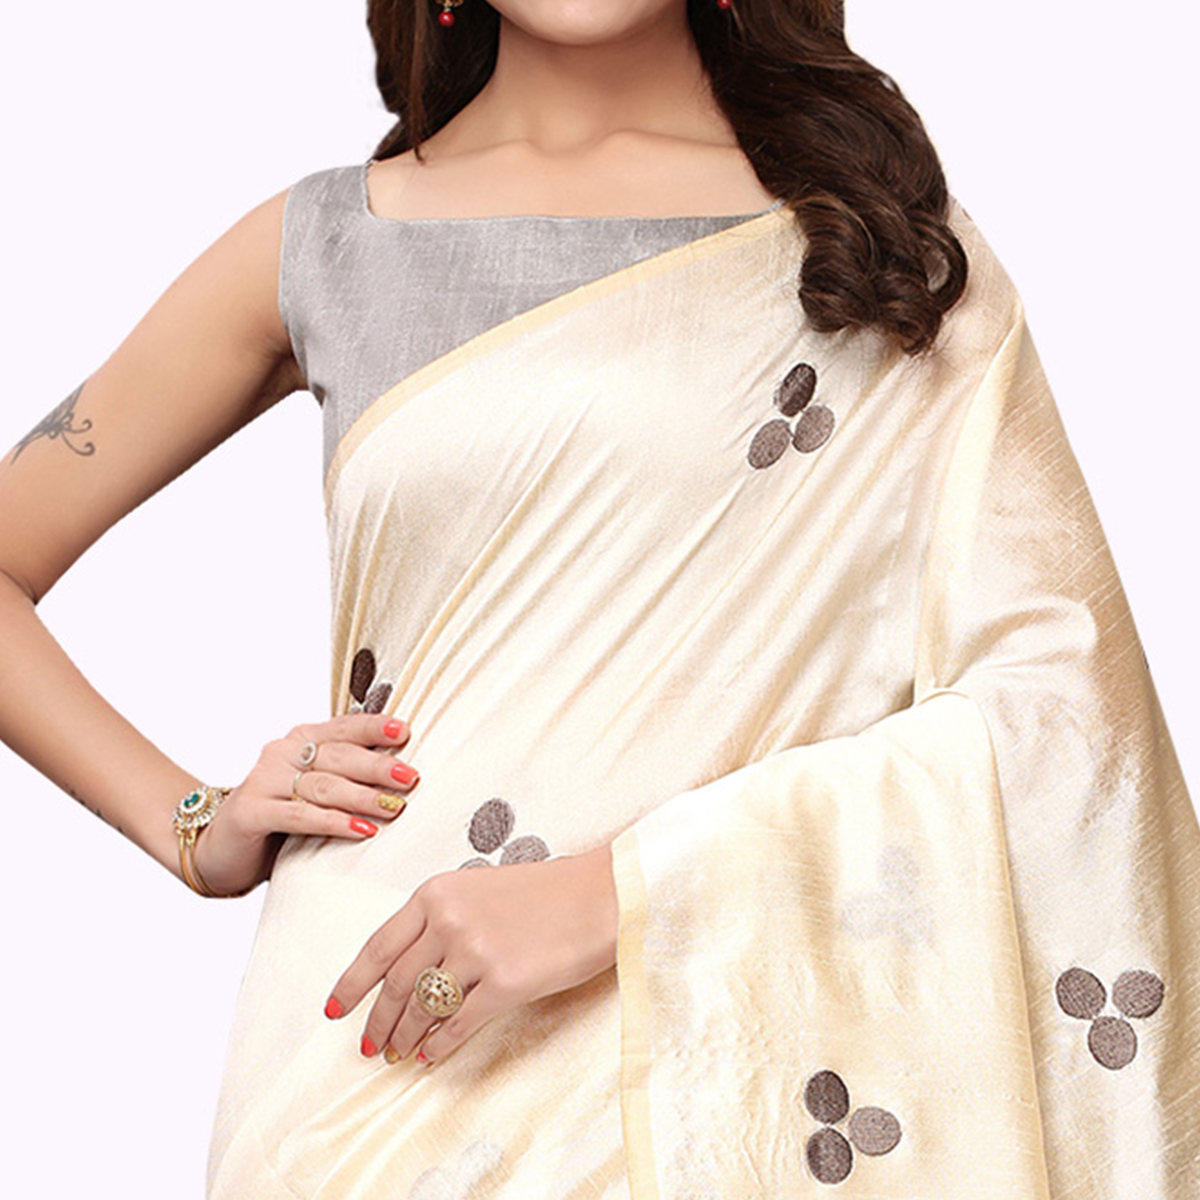 Charming Cream - Gray Colored Party Wear Embroidered Bhagalpuri Silk Saree